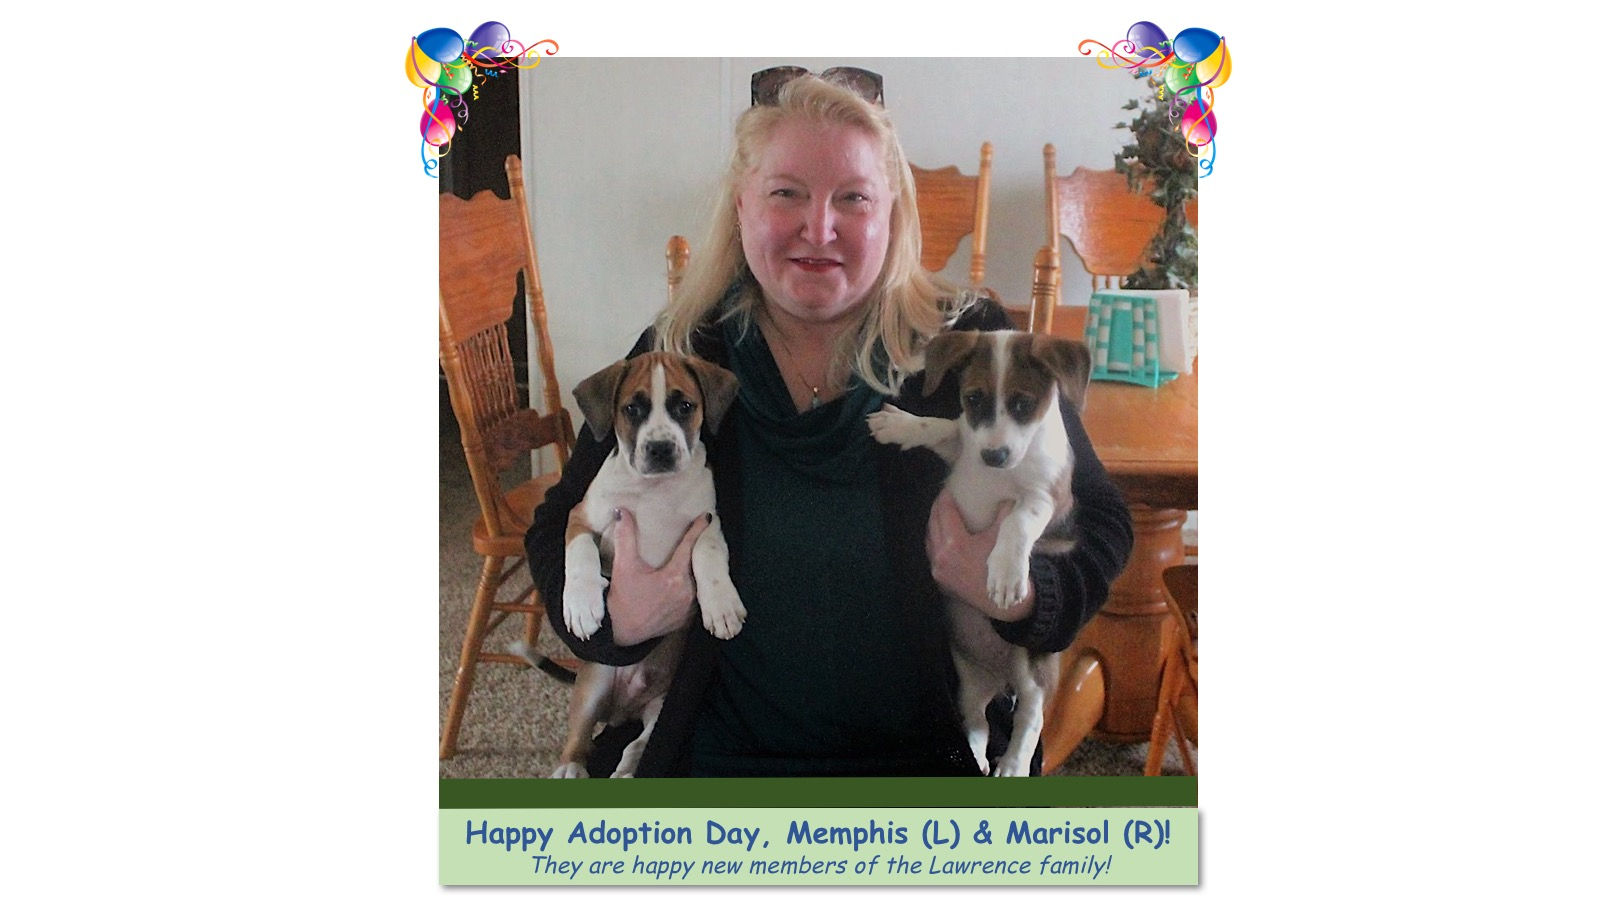 Marisol__Memphis_Adoption_photo.jpg